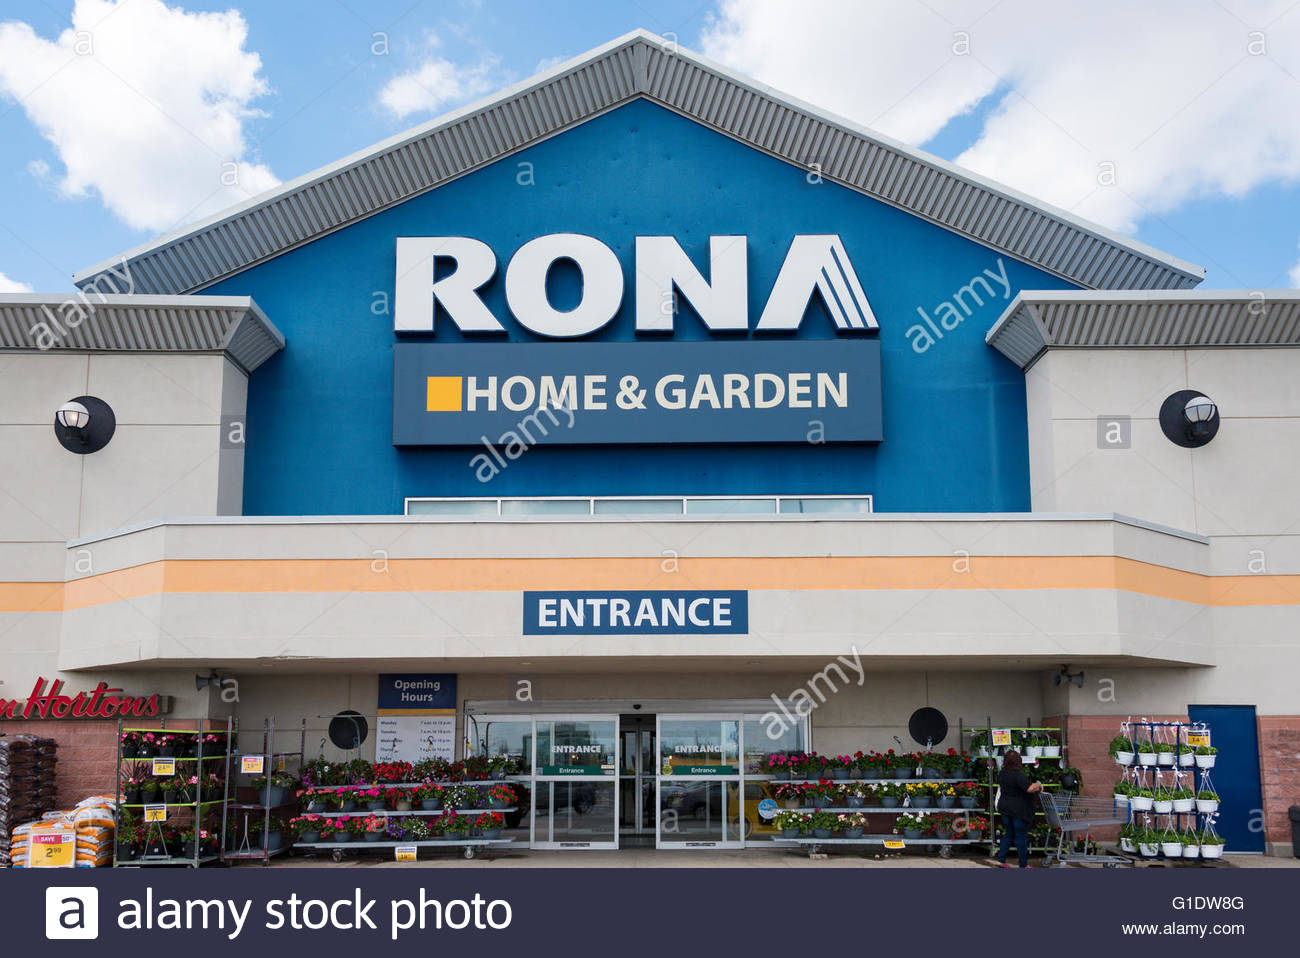 Incroyable Rona Home And Garden Sign At The Store Entrance. The Canadian Company Has  Been Acquired By Loweu0027s. The Canada Competition Bureau Has Approved The  Loweu0027s ...